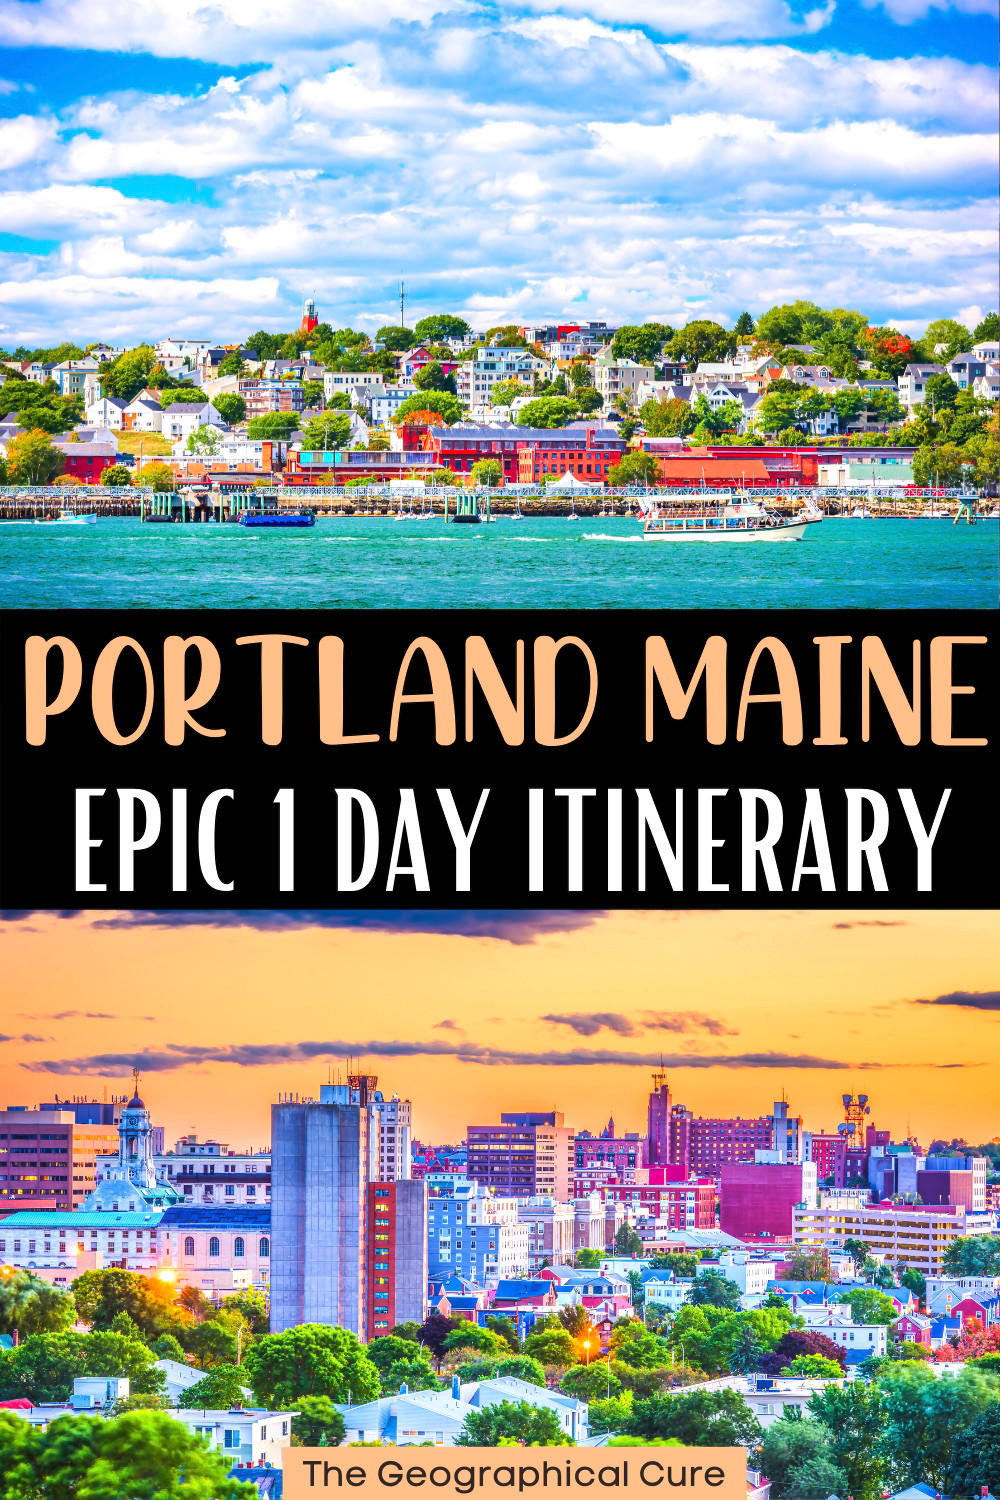 epic one day itinerary for Portland Maine, a must visit city in Maine